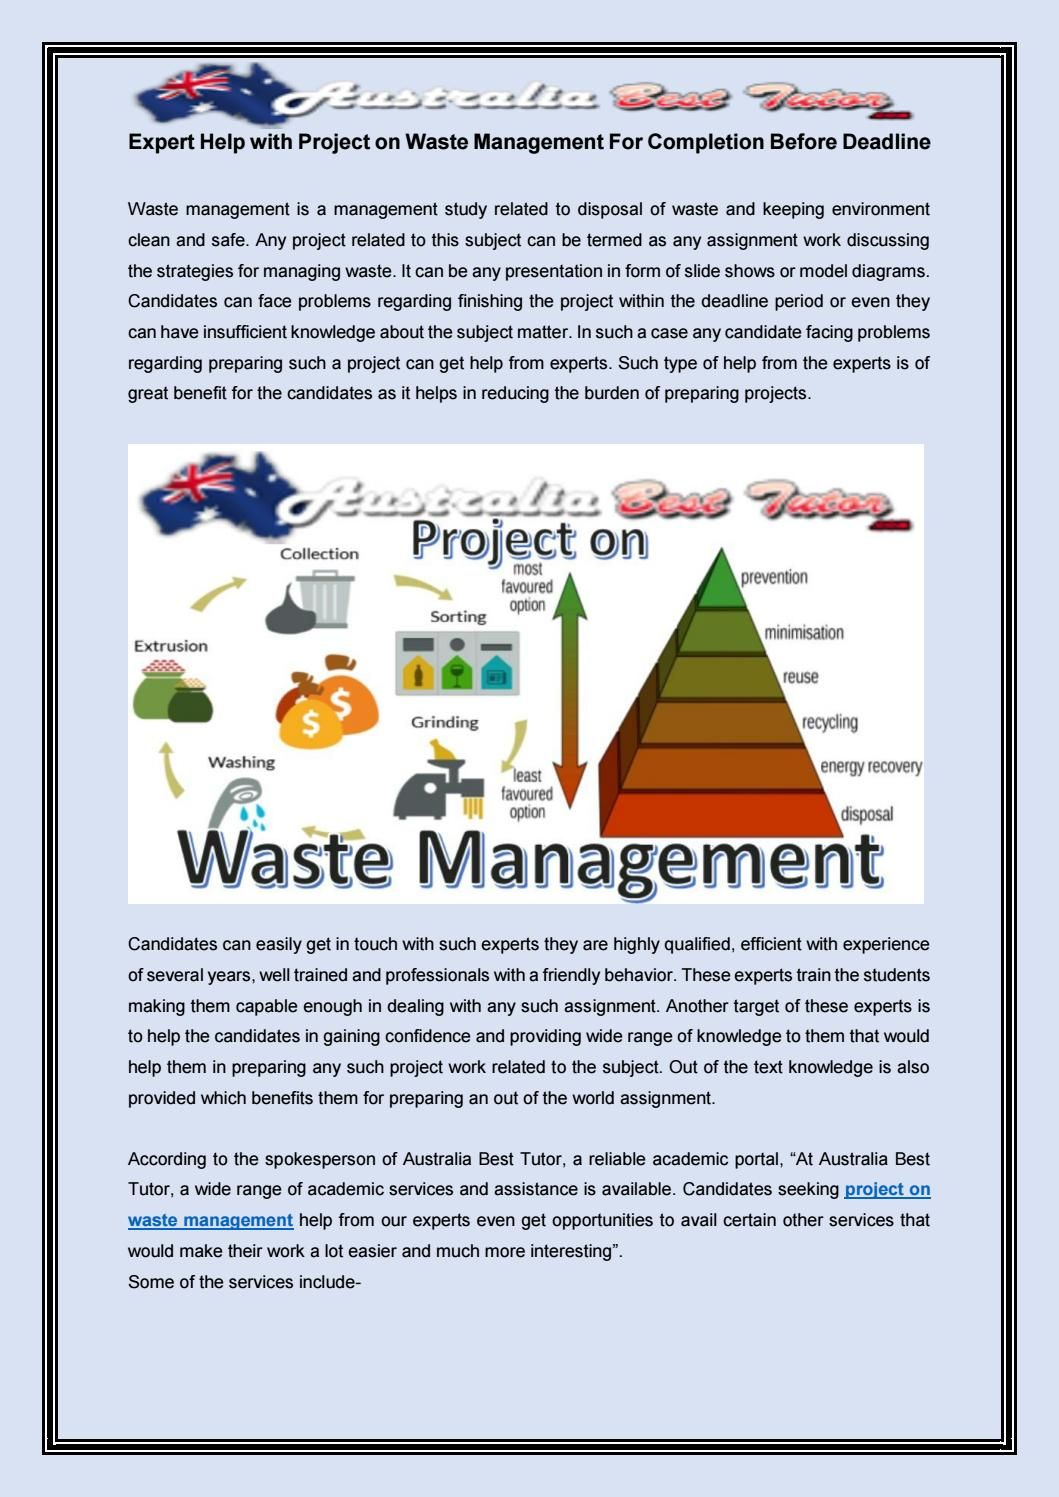 Expert Help With Project On Waste Management For Completion Before